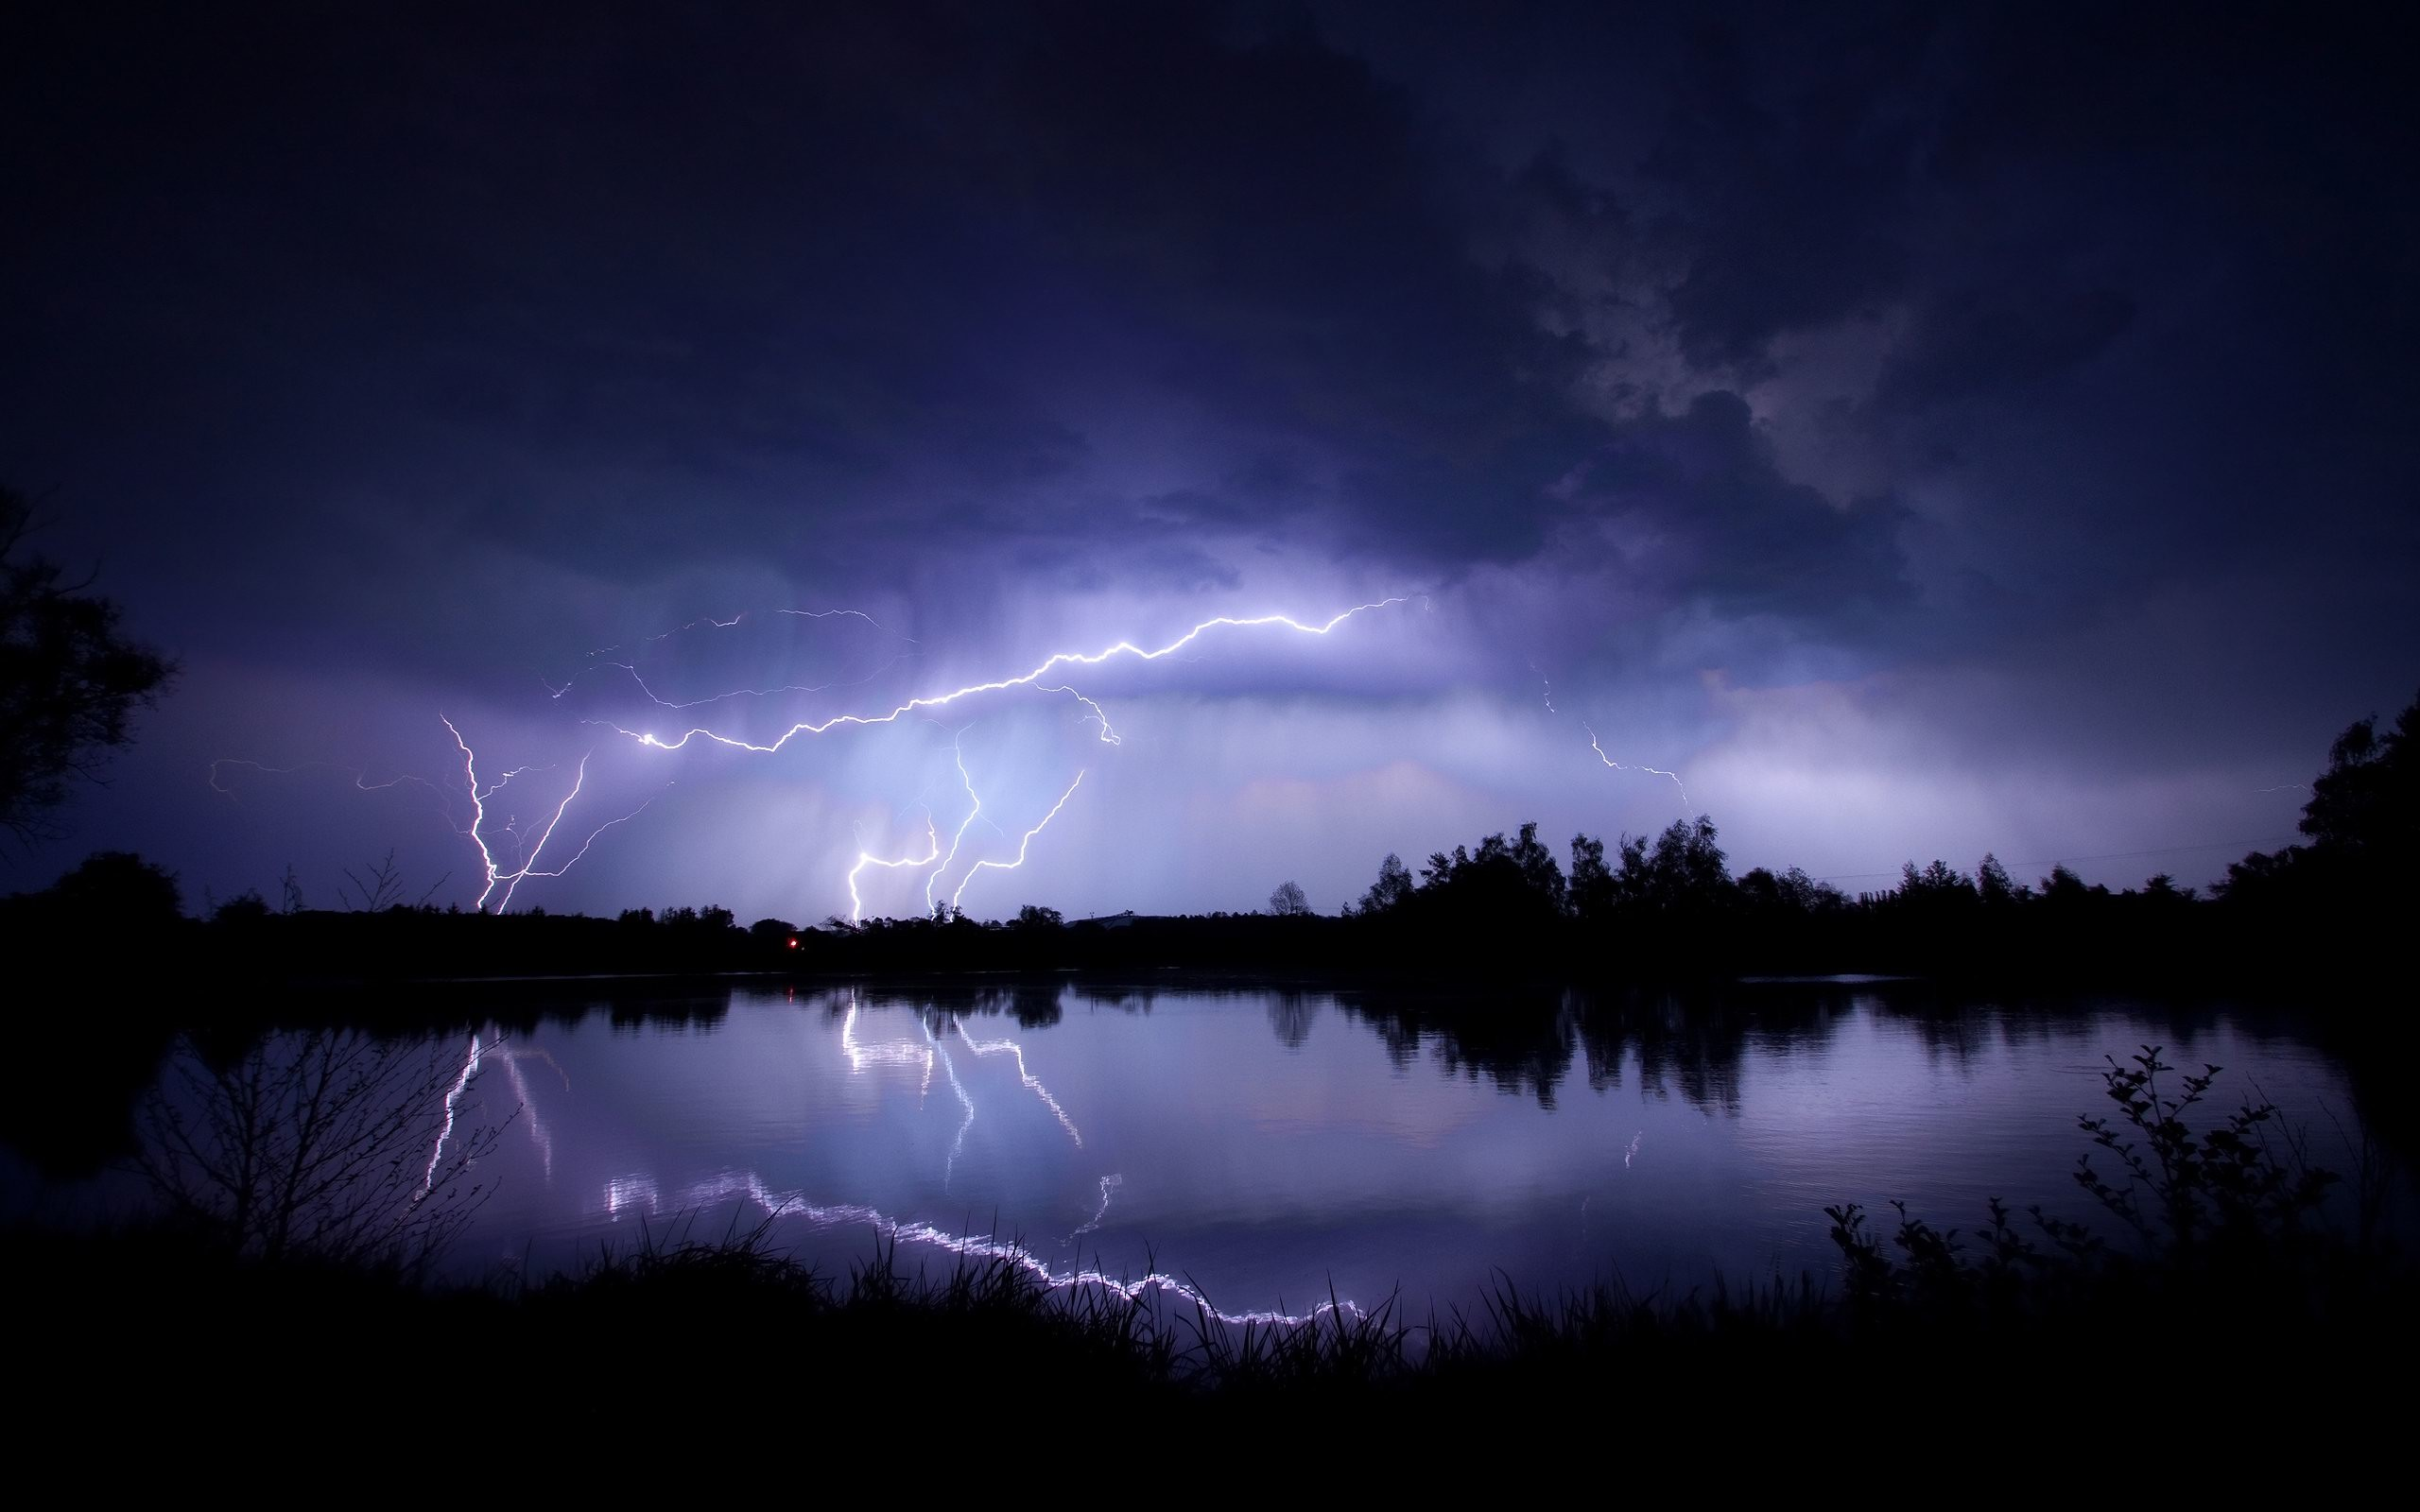 Storms for your Desktop Wallpaper https://www.thomascraigconsulting.